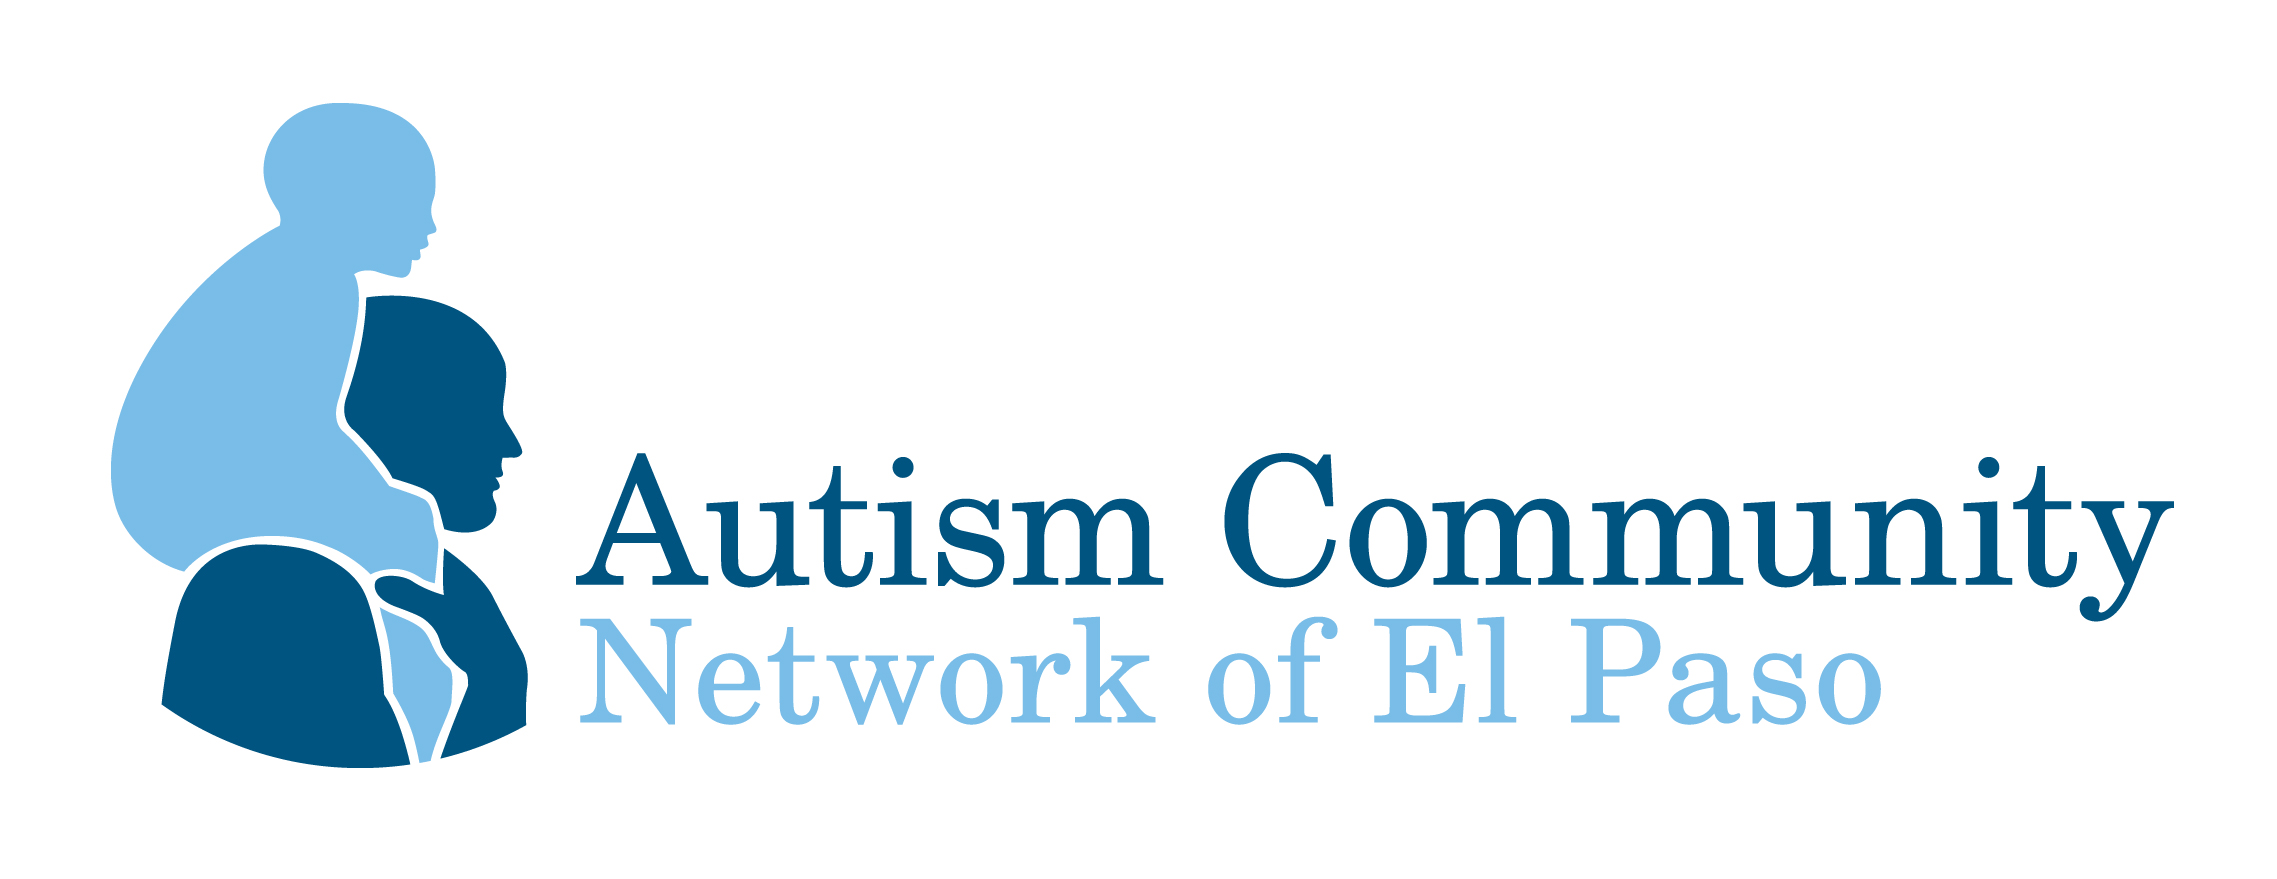 wel e to joeyponce Autism munity Network of El Paso